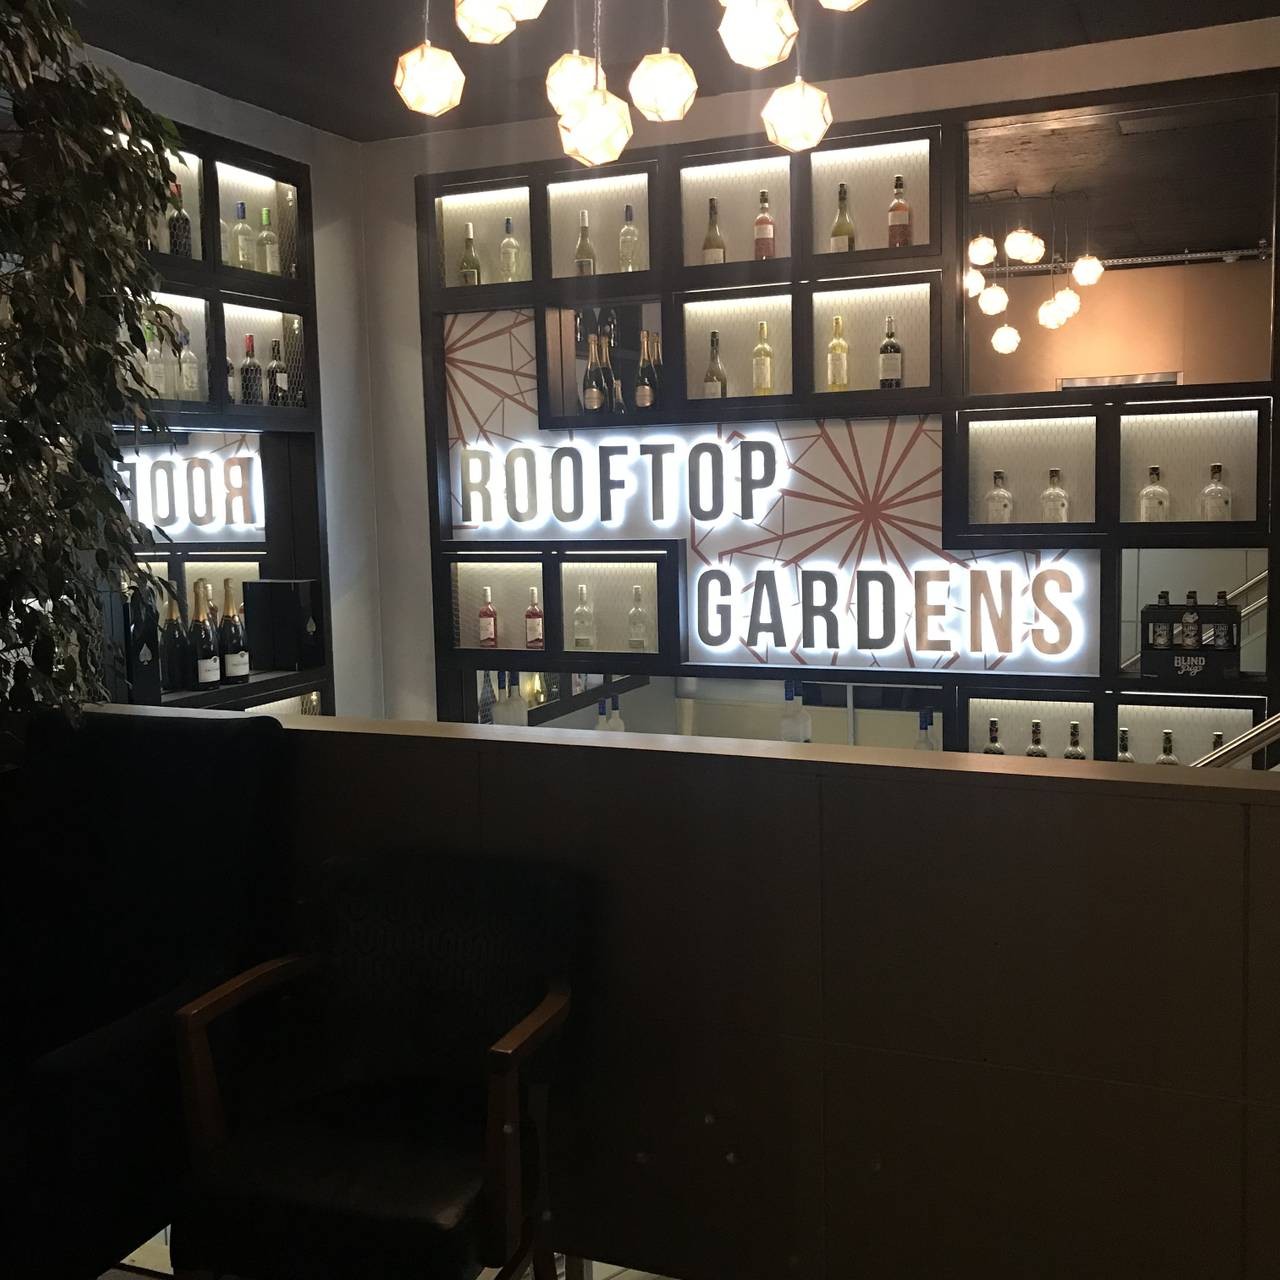 Best Image Of Garden Woodimages Co: Rooftop Gardens Norwich Sunday Lunch Menu